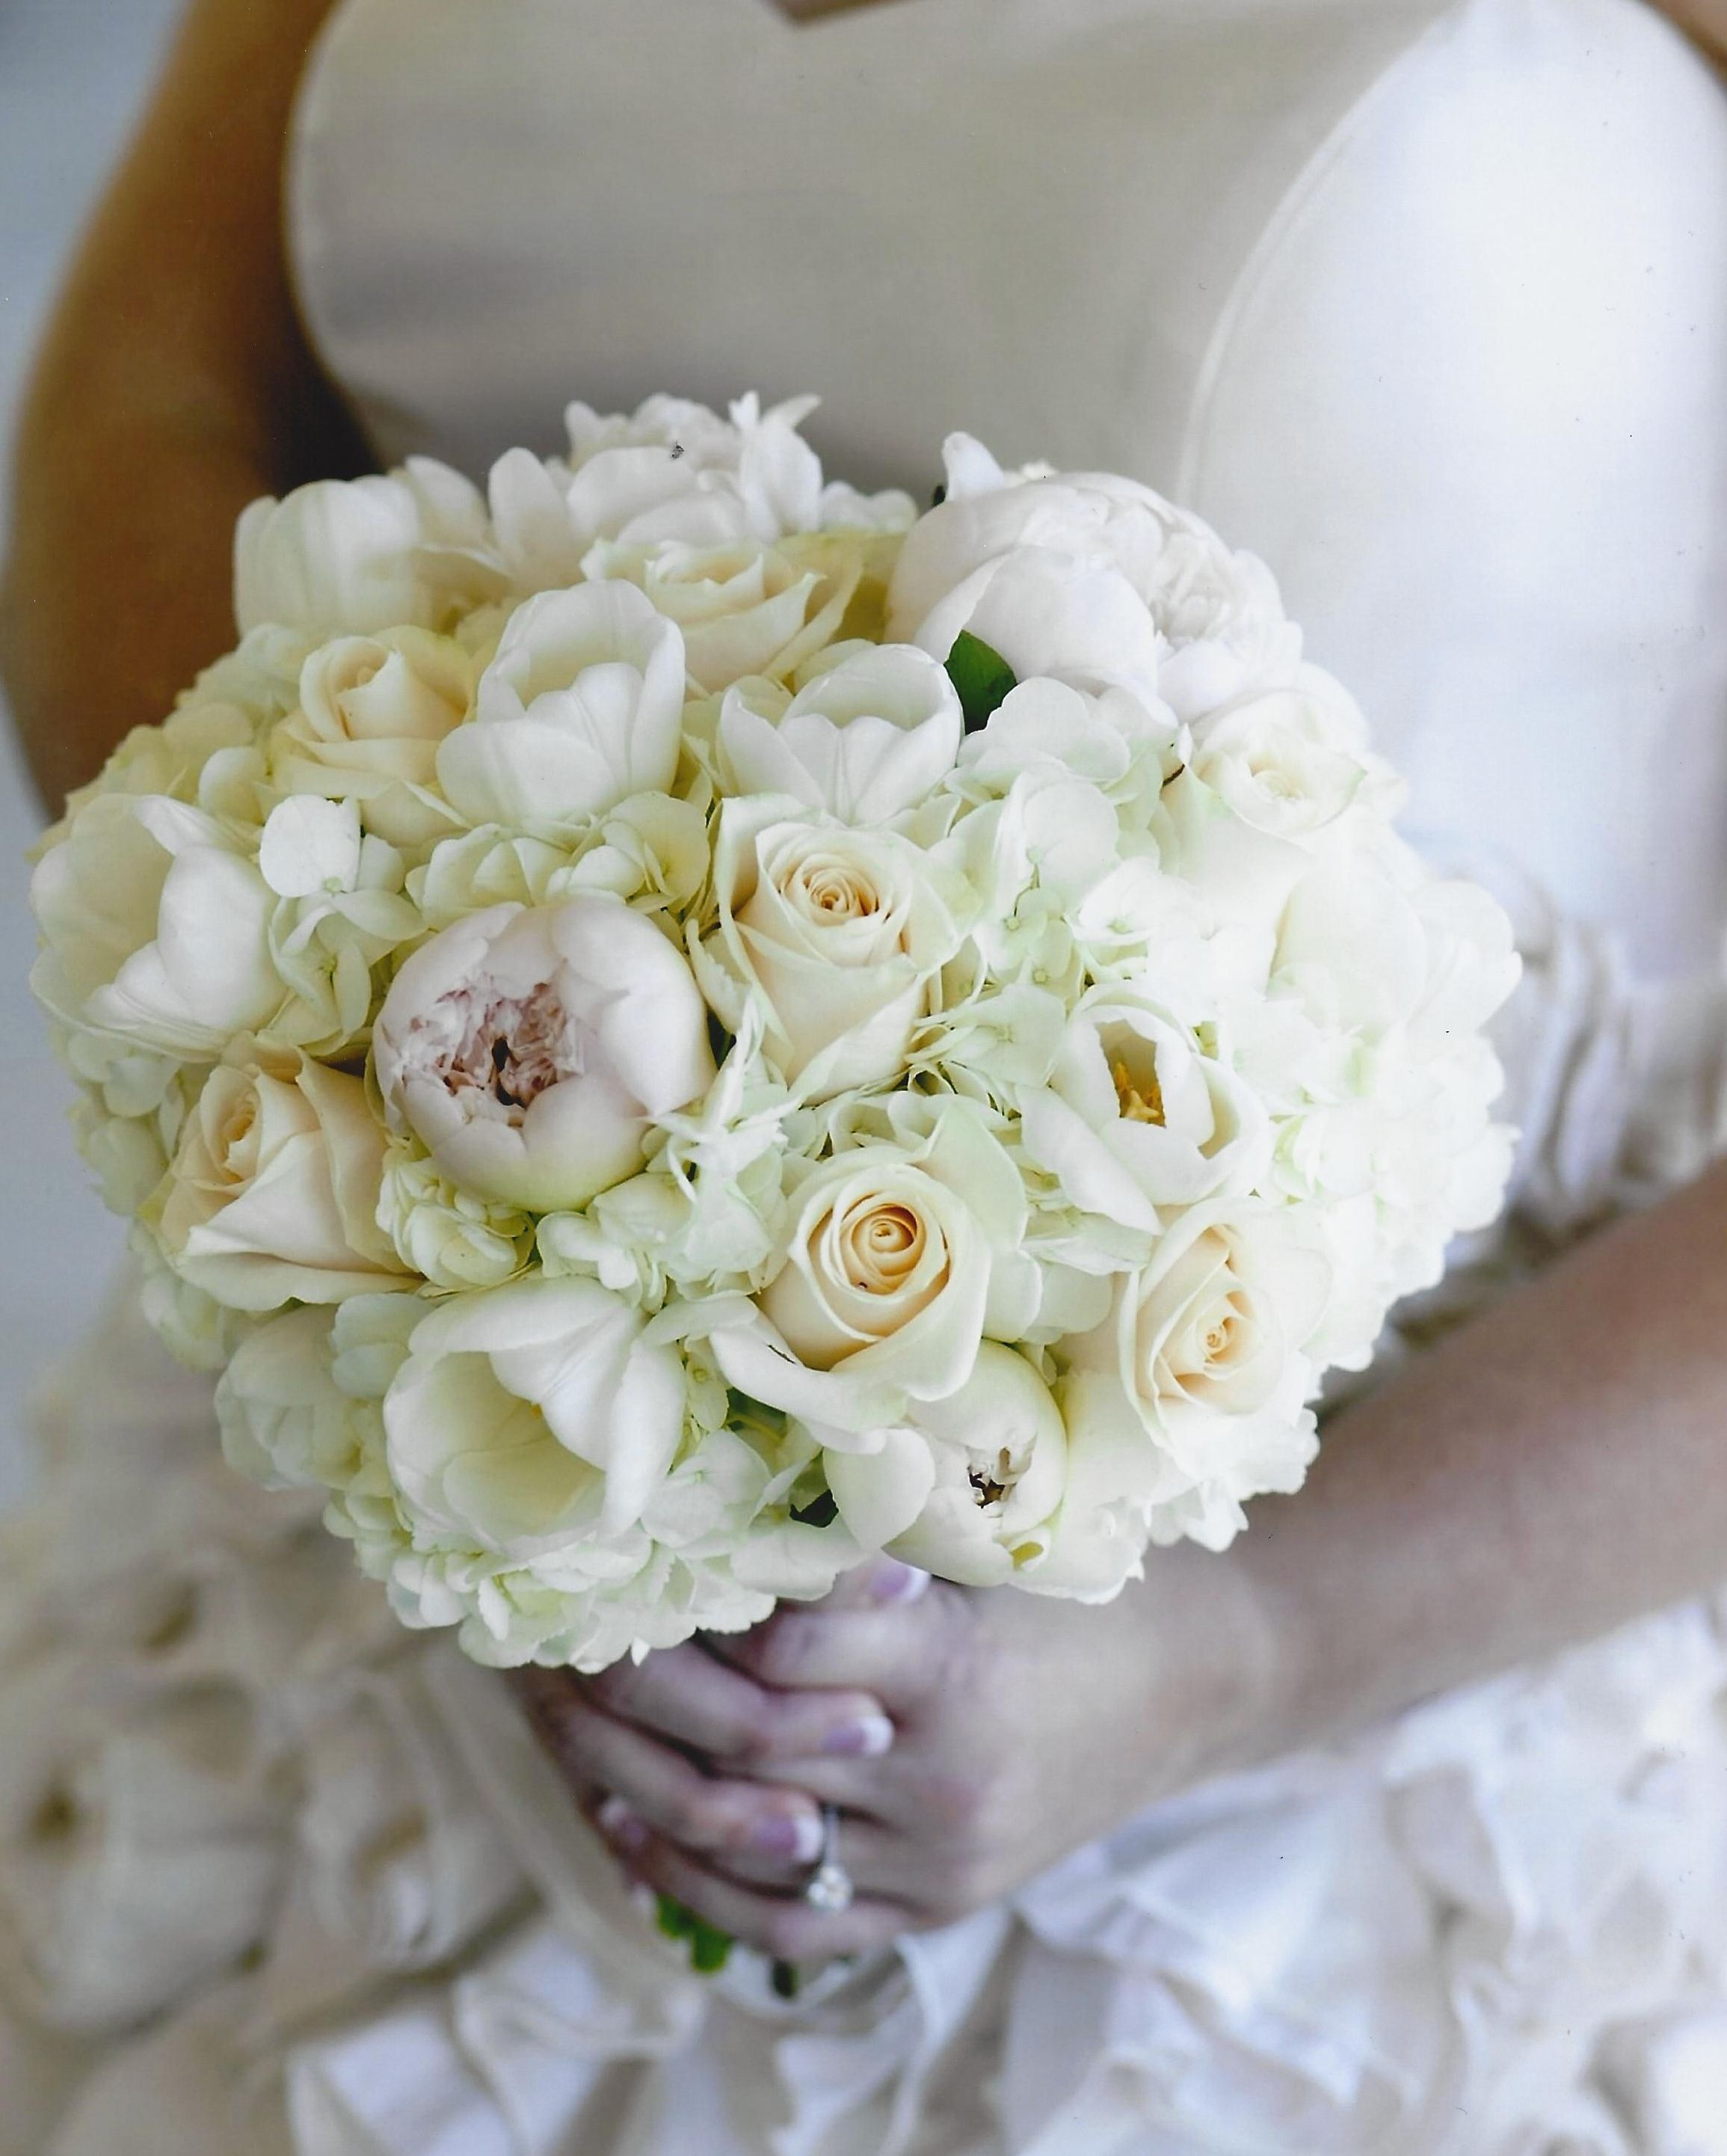 creamy vendela roses white hydrangea white tulips and barely blush peonies